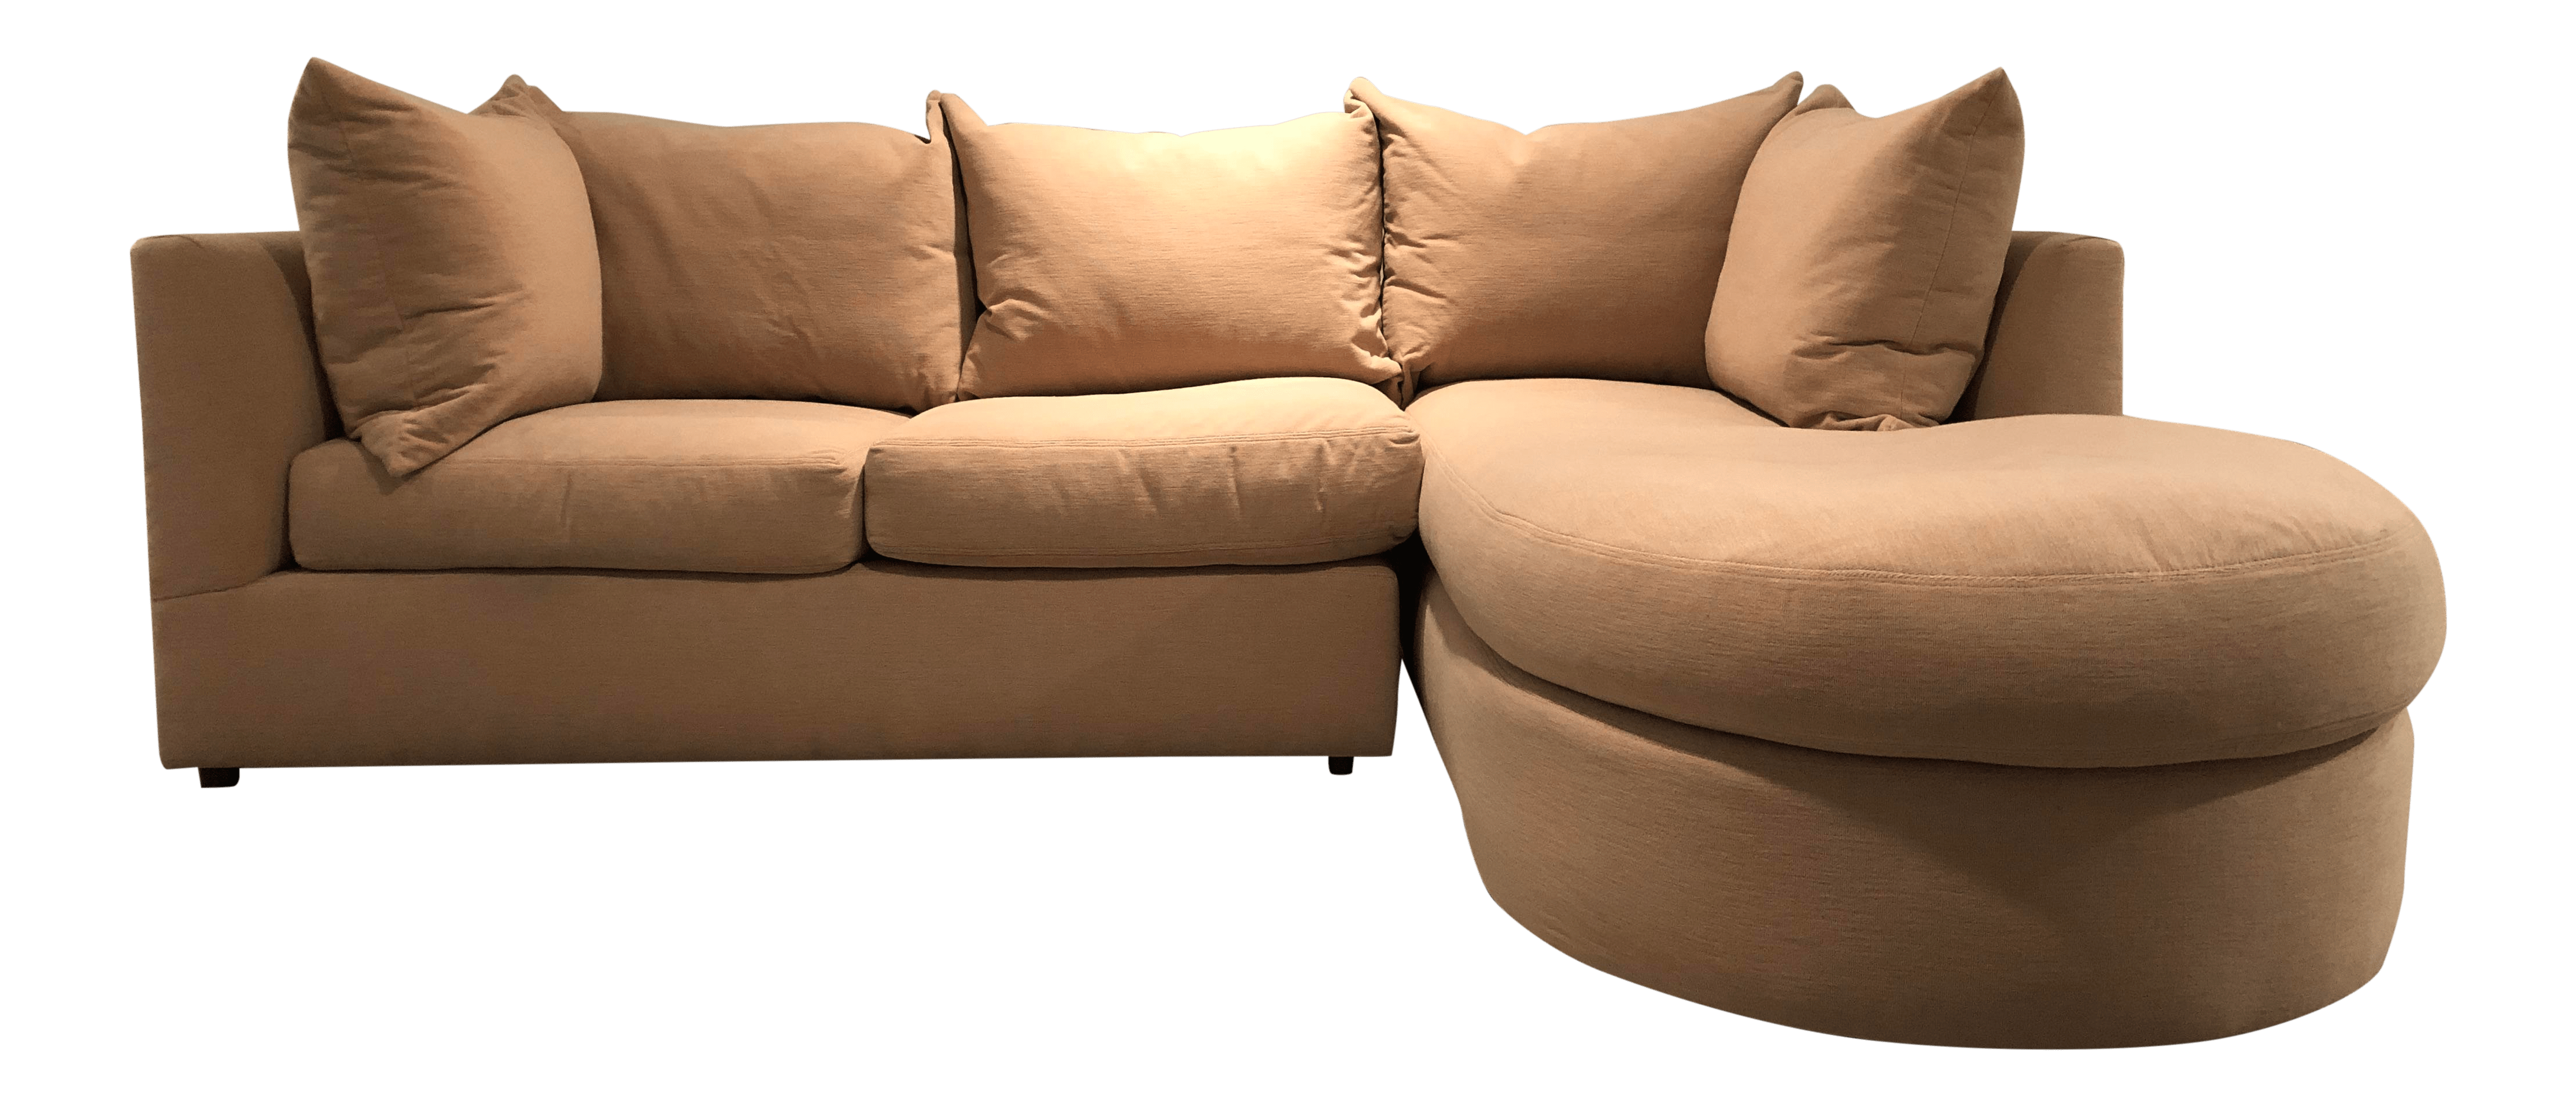 sectional sofa purchase colorado leather modern kreiss collection two piece chairish for sale